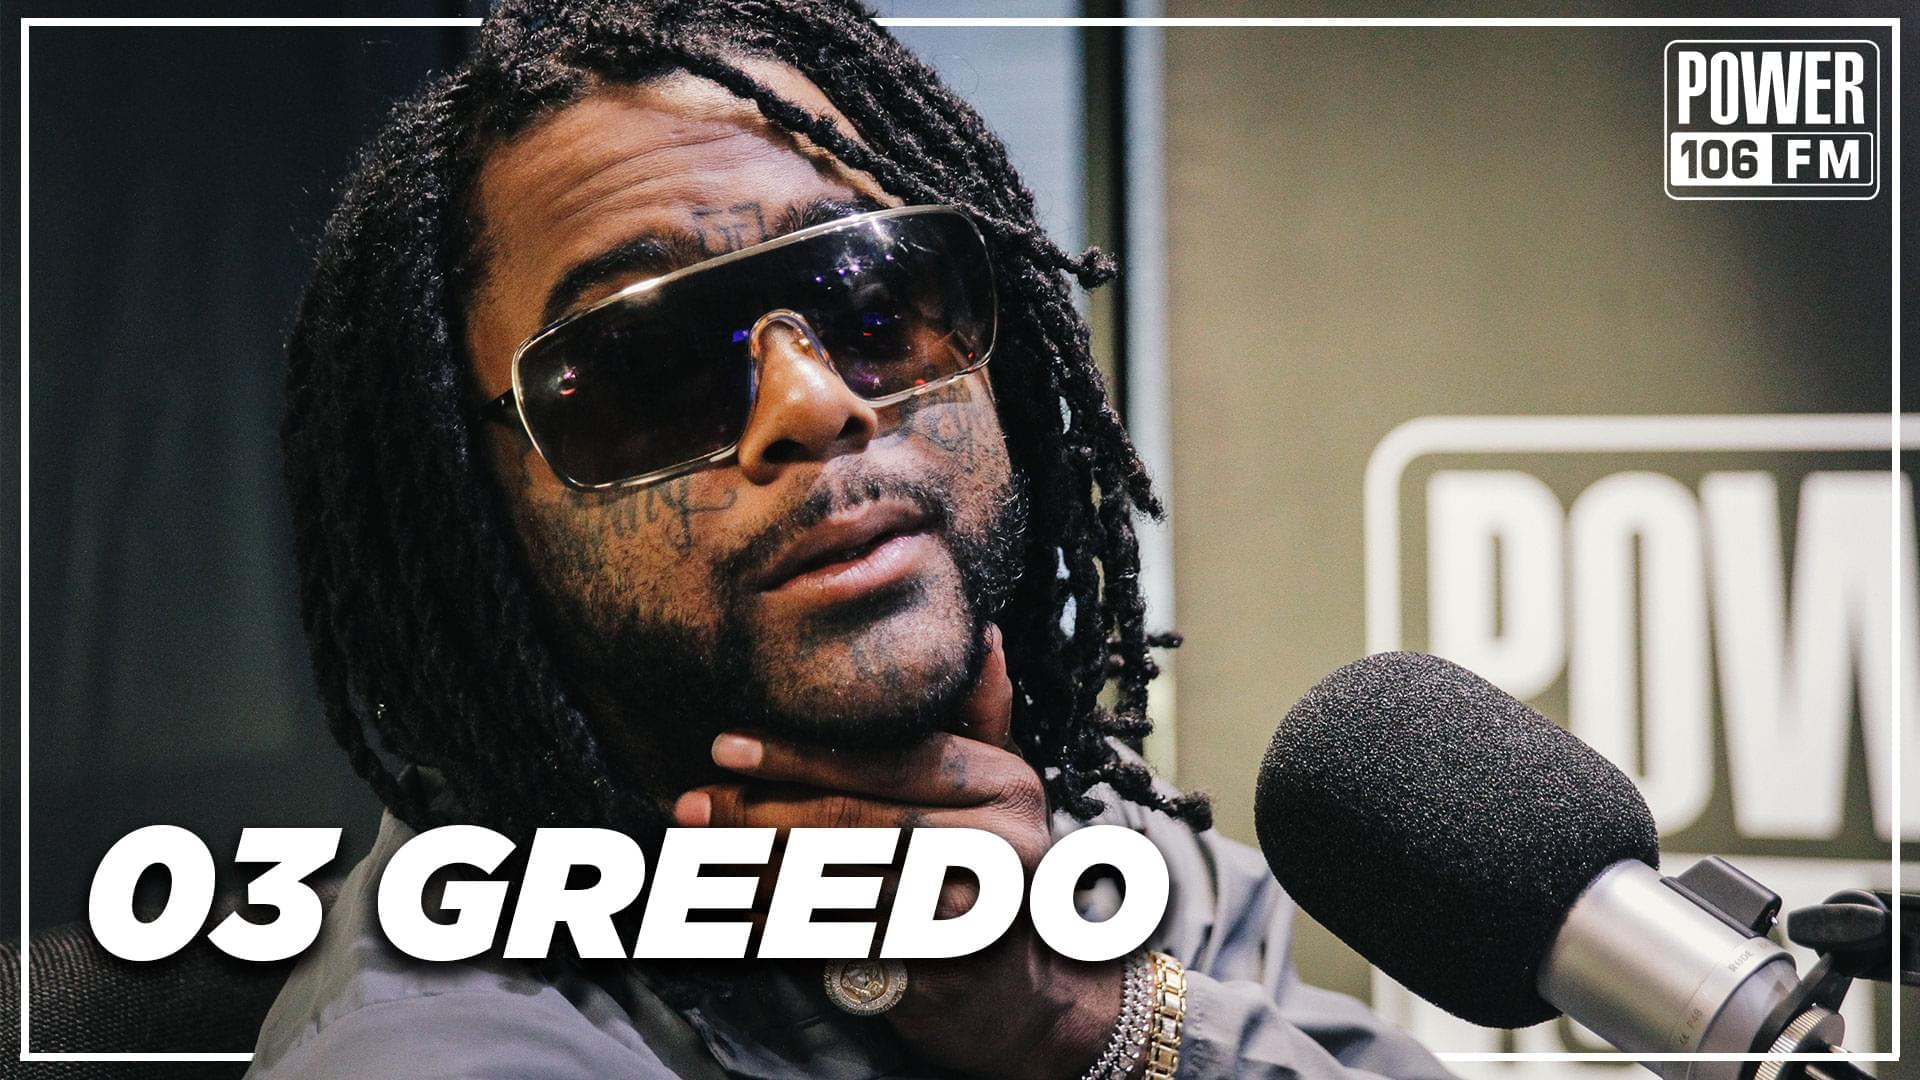 03 Greedo Eligible For Parole In 2020